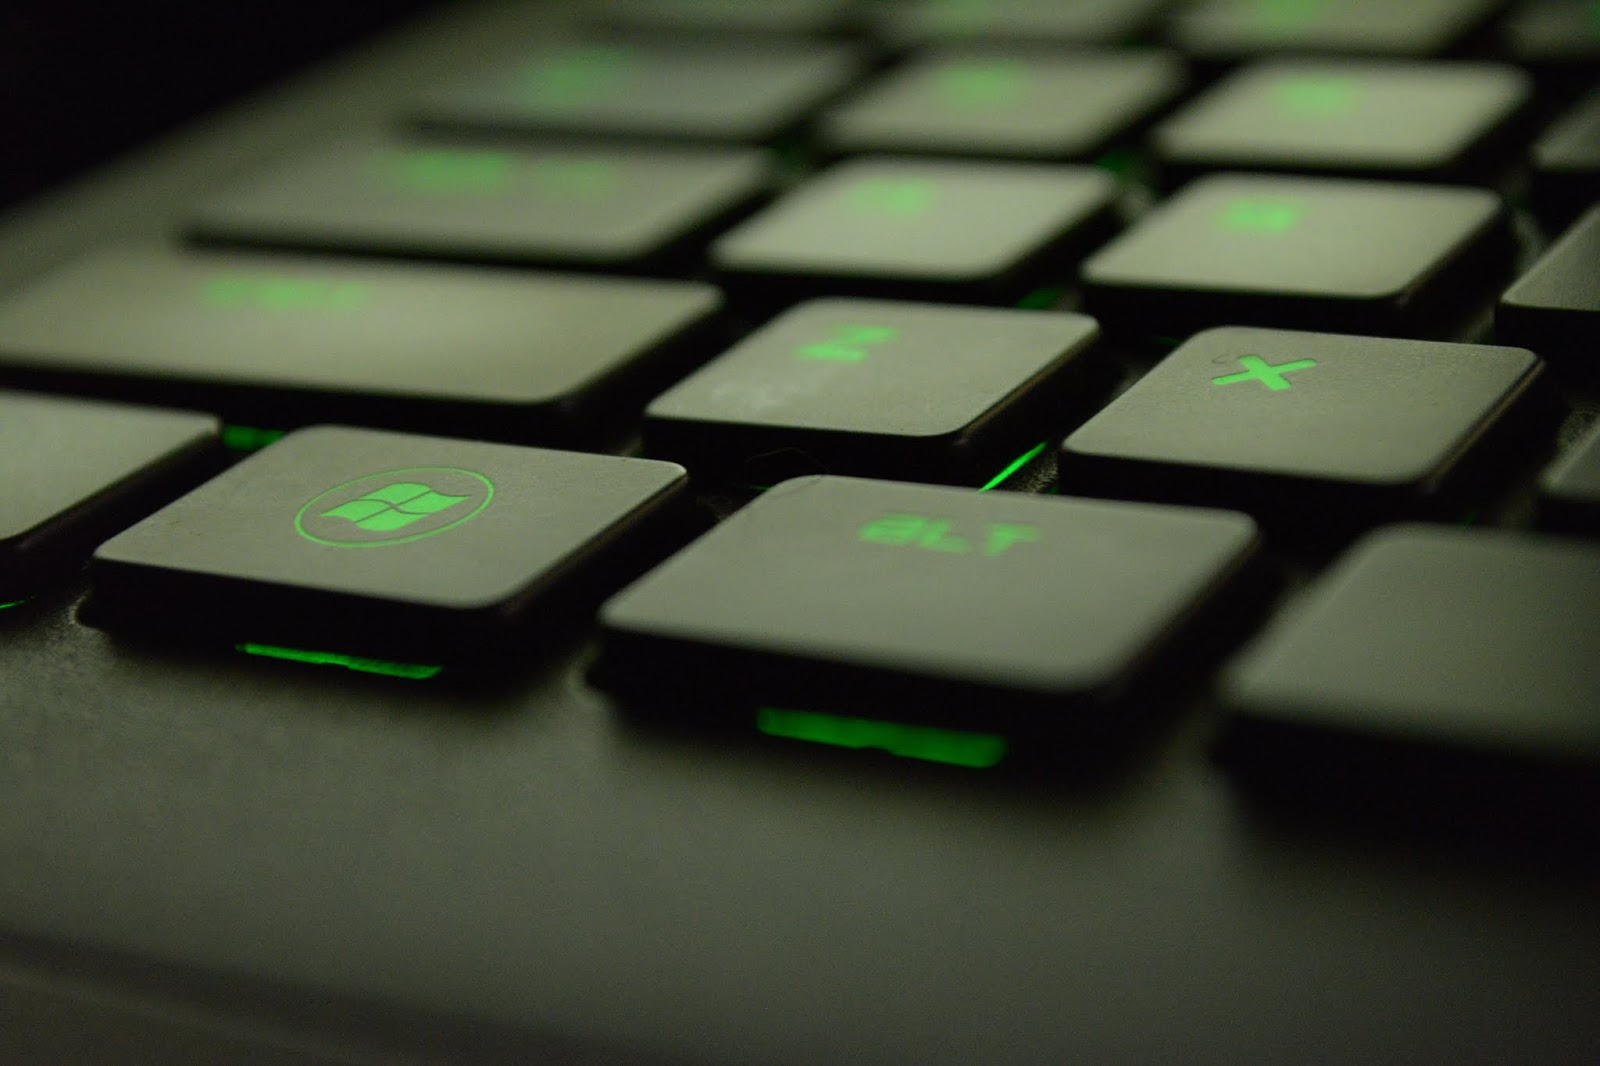 How do I enable the Fn key on my HP laptop - Printer Toll